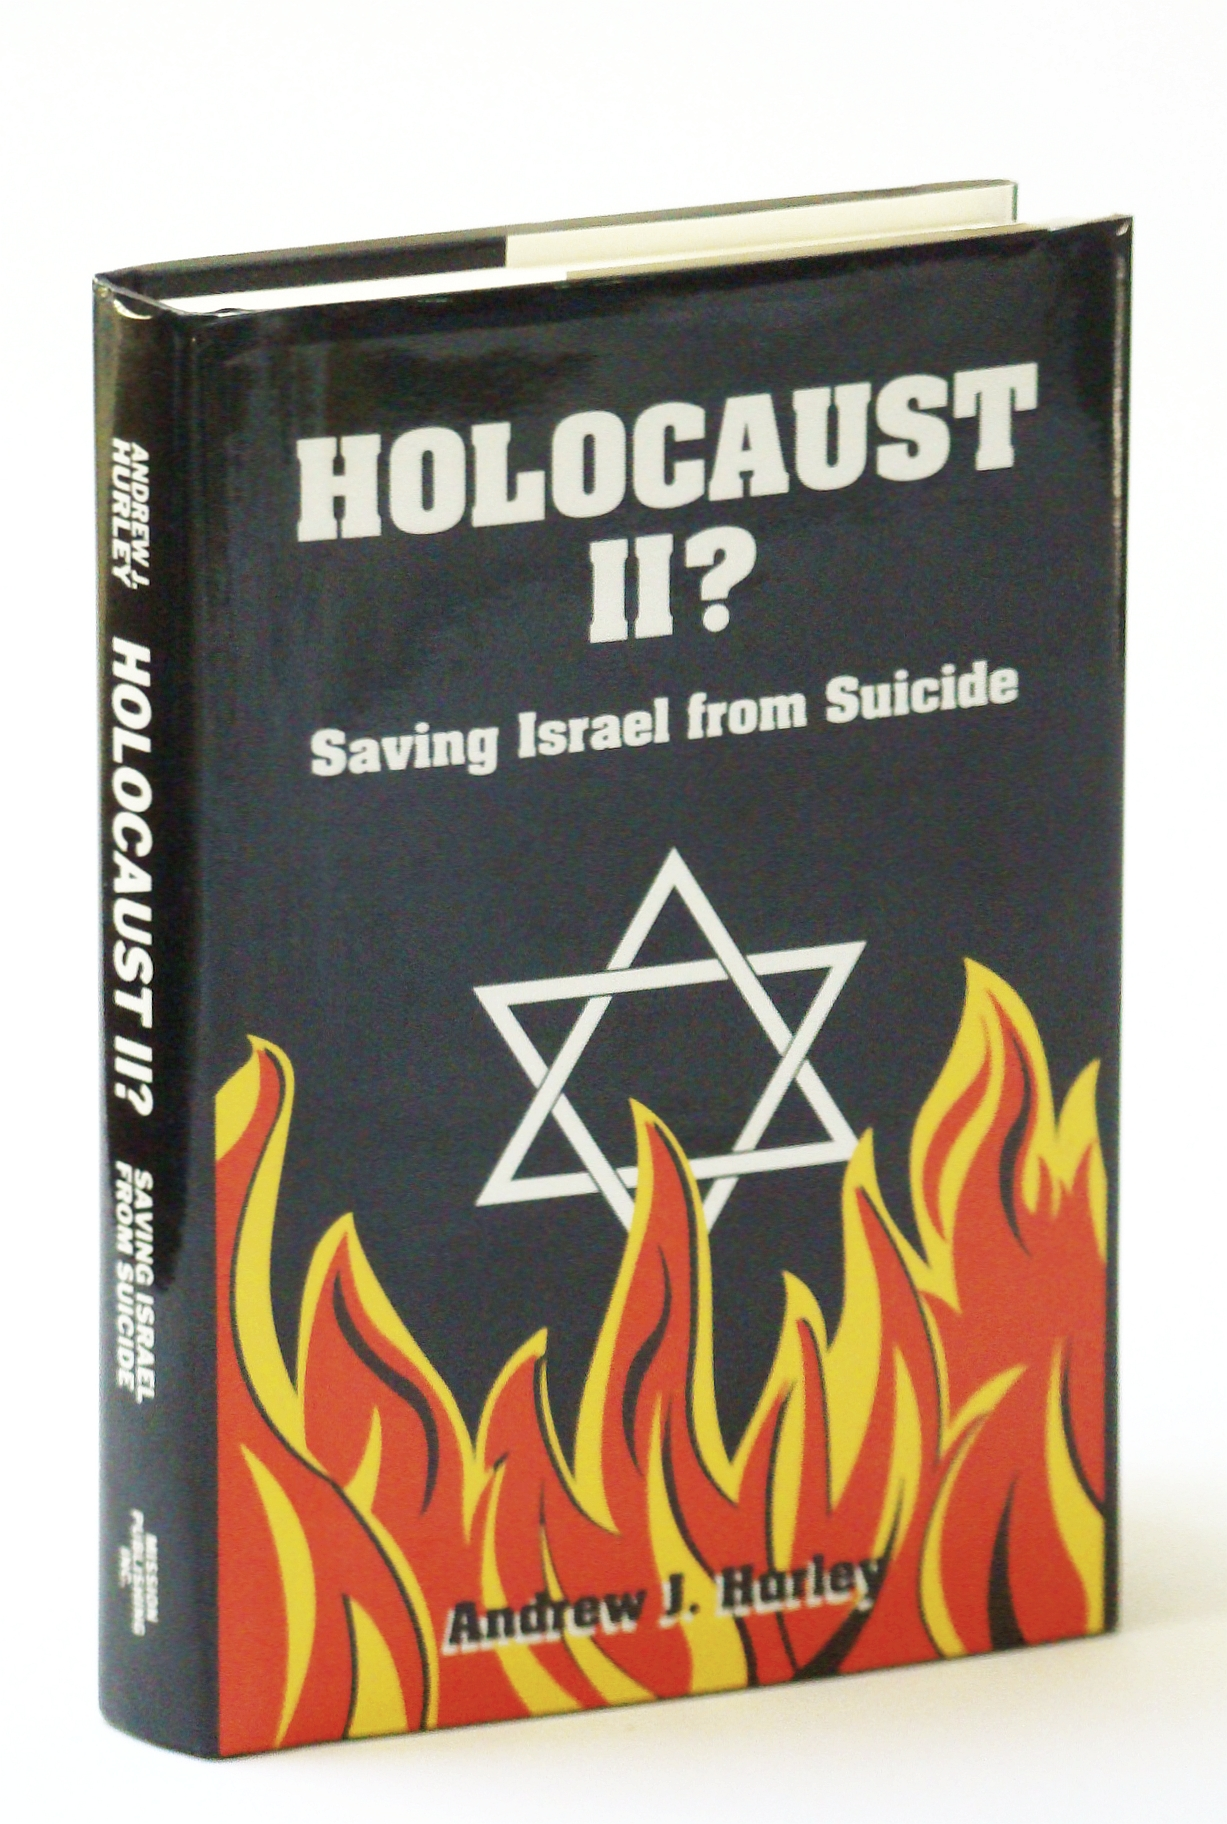 Image for Holocaust II ? Saving Israel from Suicide